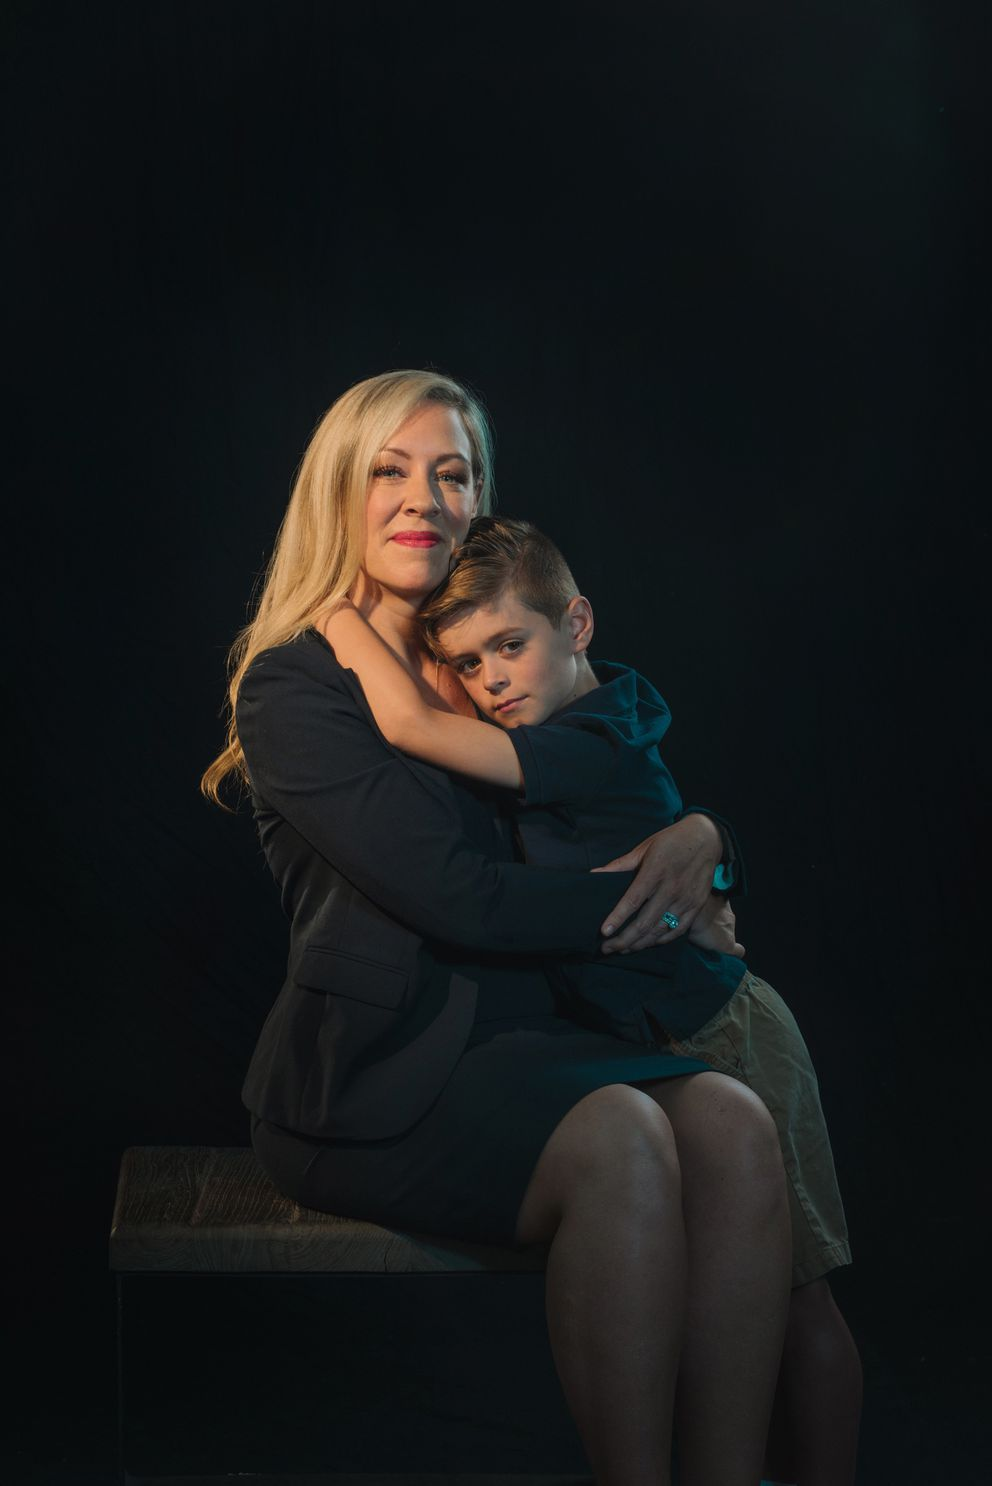 Rachel Mountis, who is part of a lawsuit accusing Merck of paying women less than men and denying them professional opportunities, with son Max, age 7, at her home in Mount Pleasant, S.C., May 12, 2018. (Mike Belleme/The New York Times)